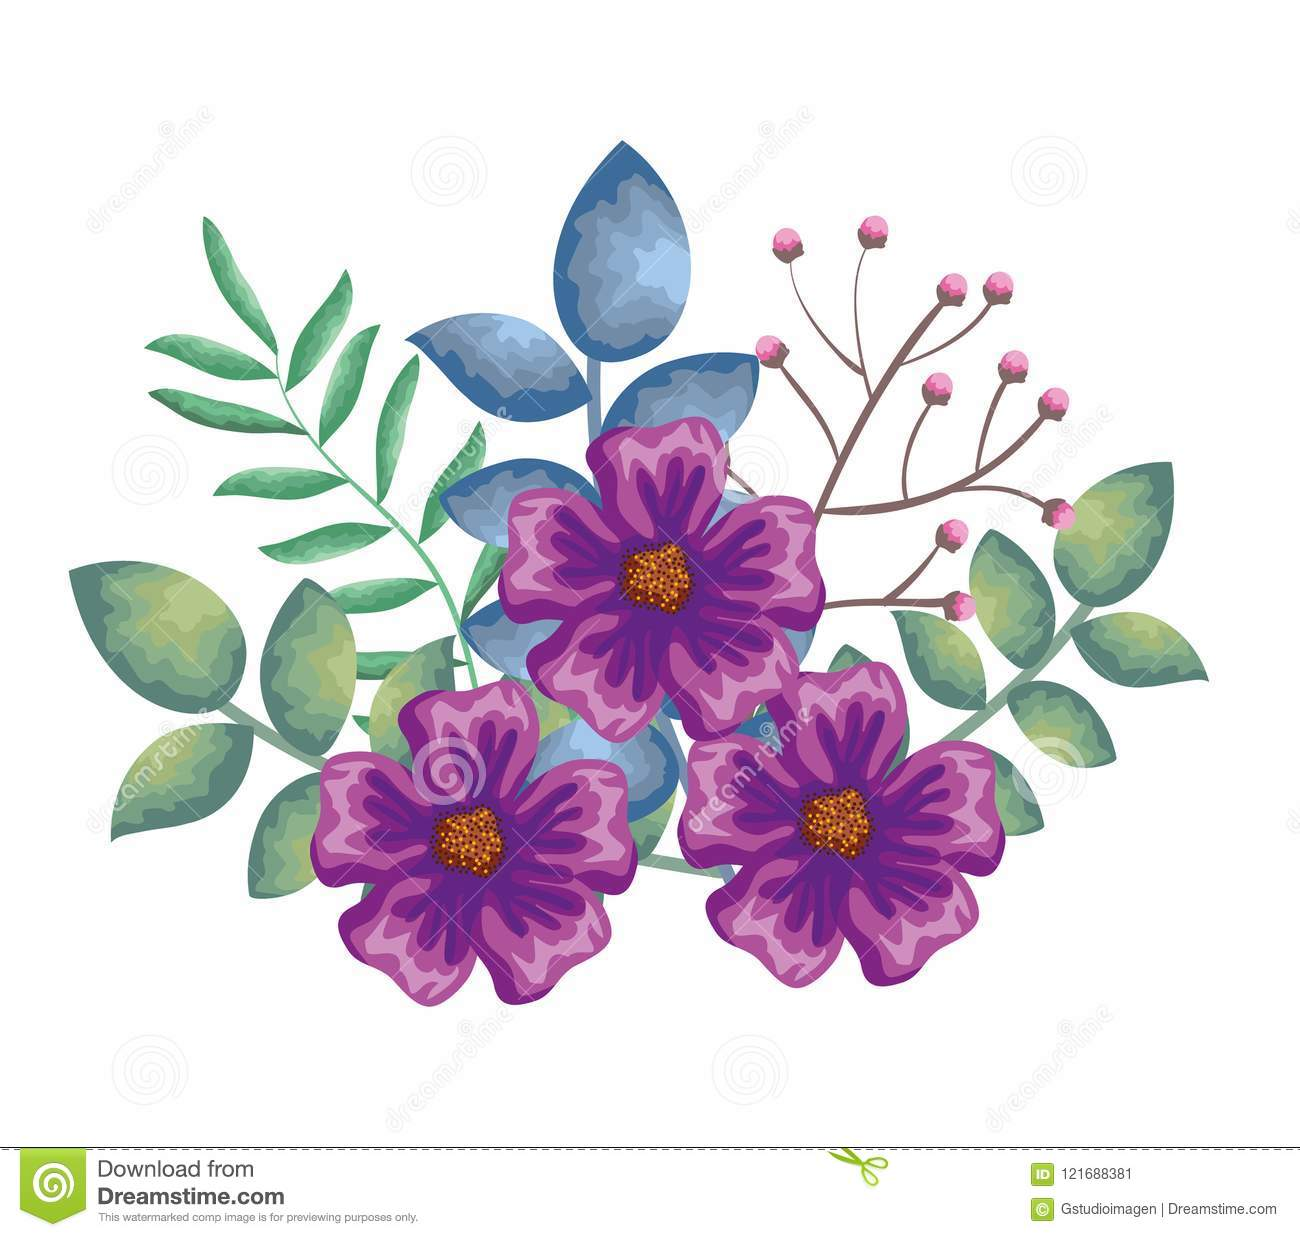 Beautiful flowers and leafs decoration stock vector illustration download beautiful flowers and leafs decoration stock vector illustration of clipart florist 121688381 izmirmasajfo